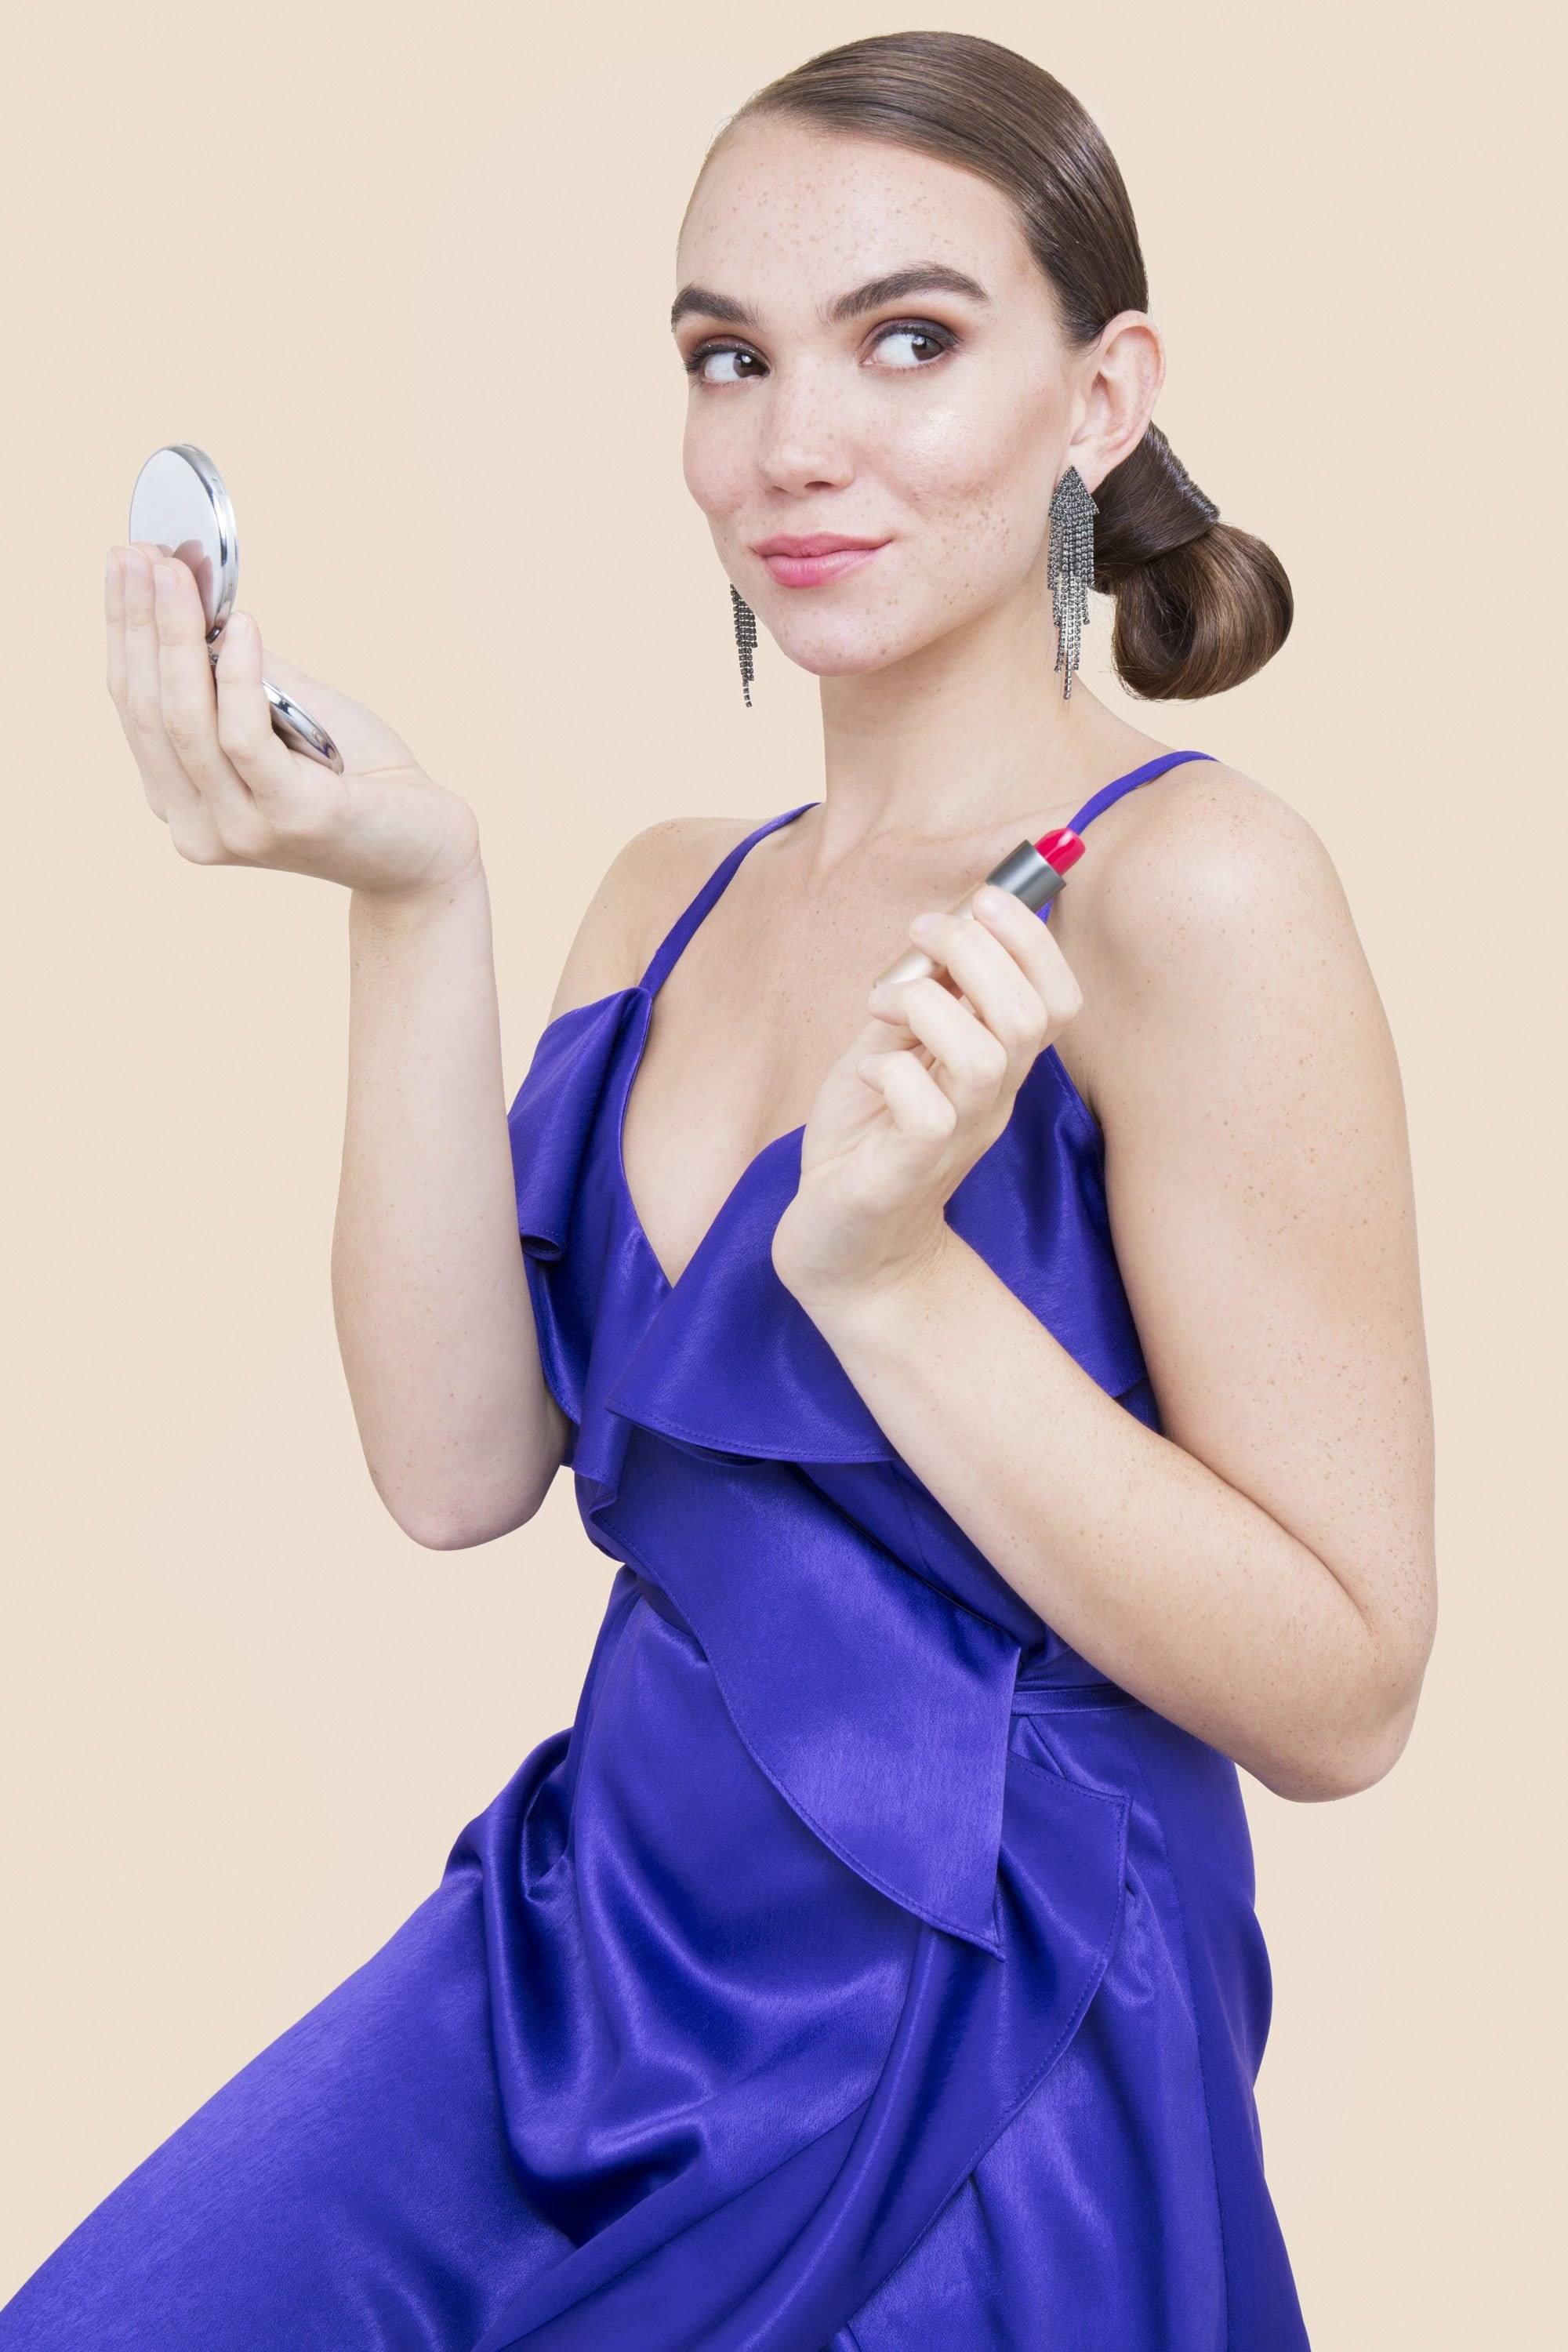 shot of model in the studio with sleek low side bun, wearing blue dress and holding makeup